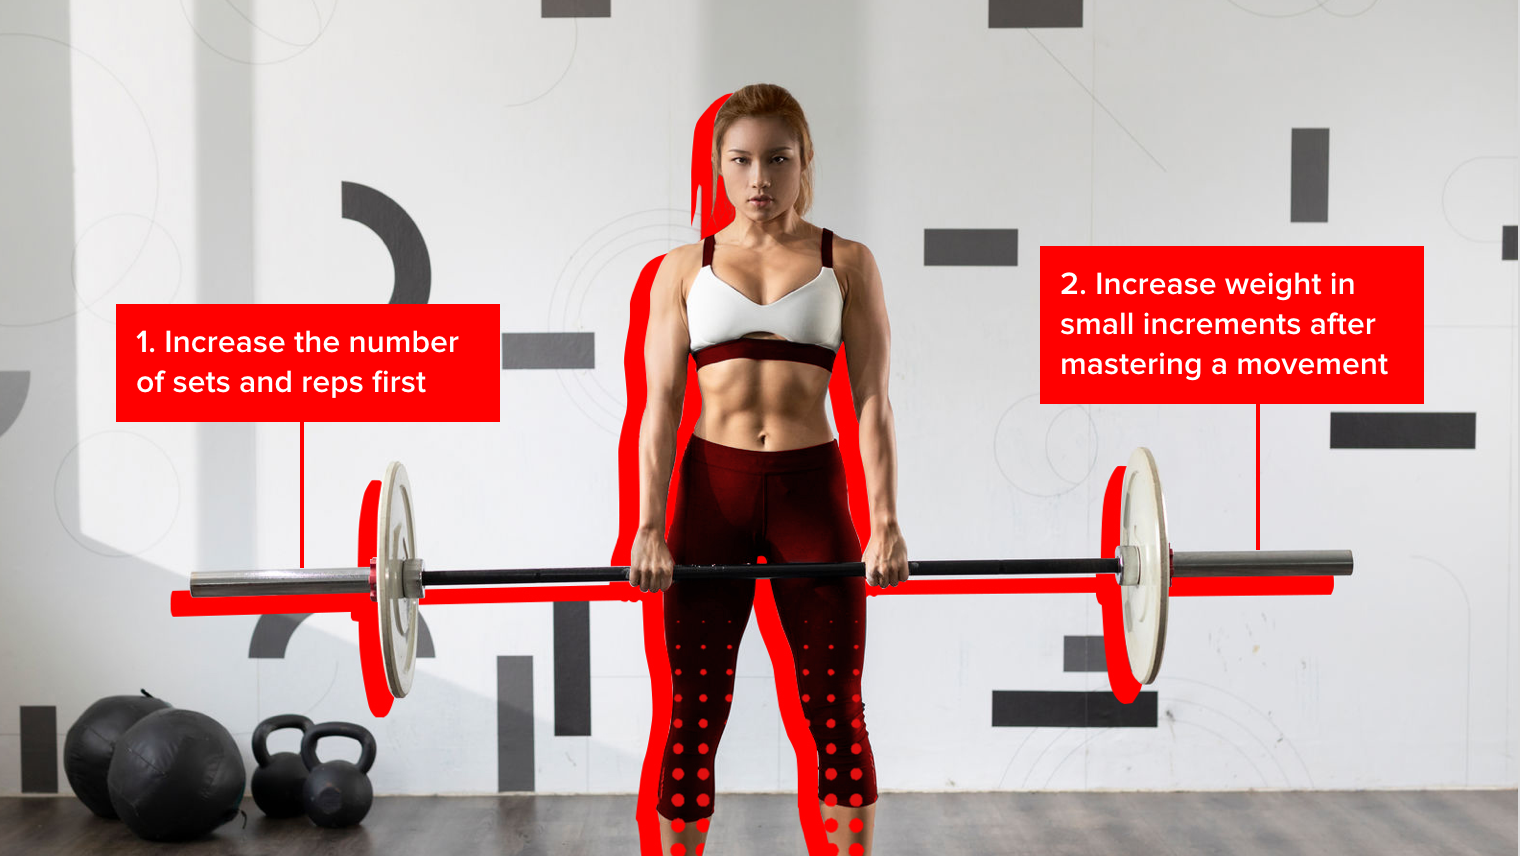 A woman lifting a barbell using overload training, which states that lifters should first increase the number of sets and reps, then increase the weight when the movement has been mastered